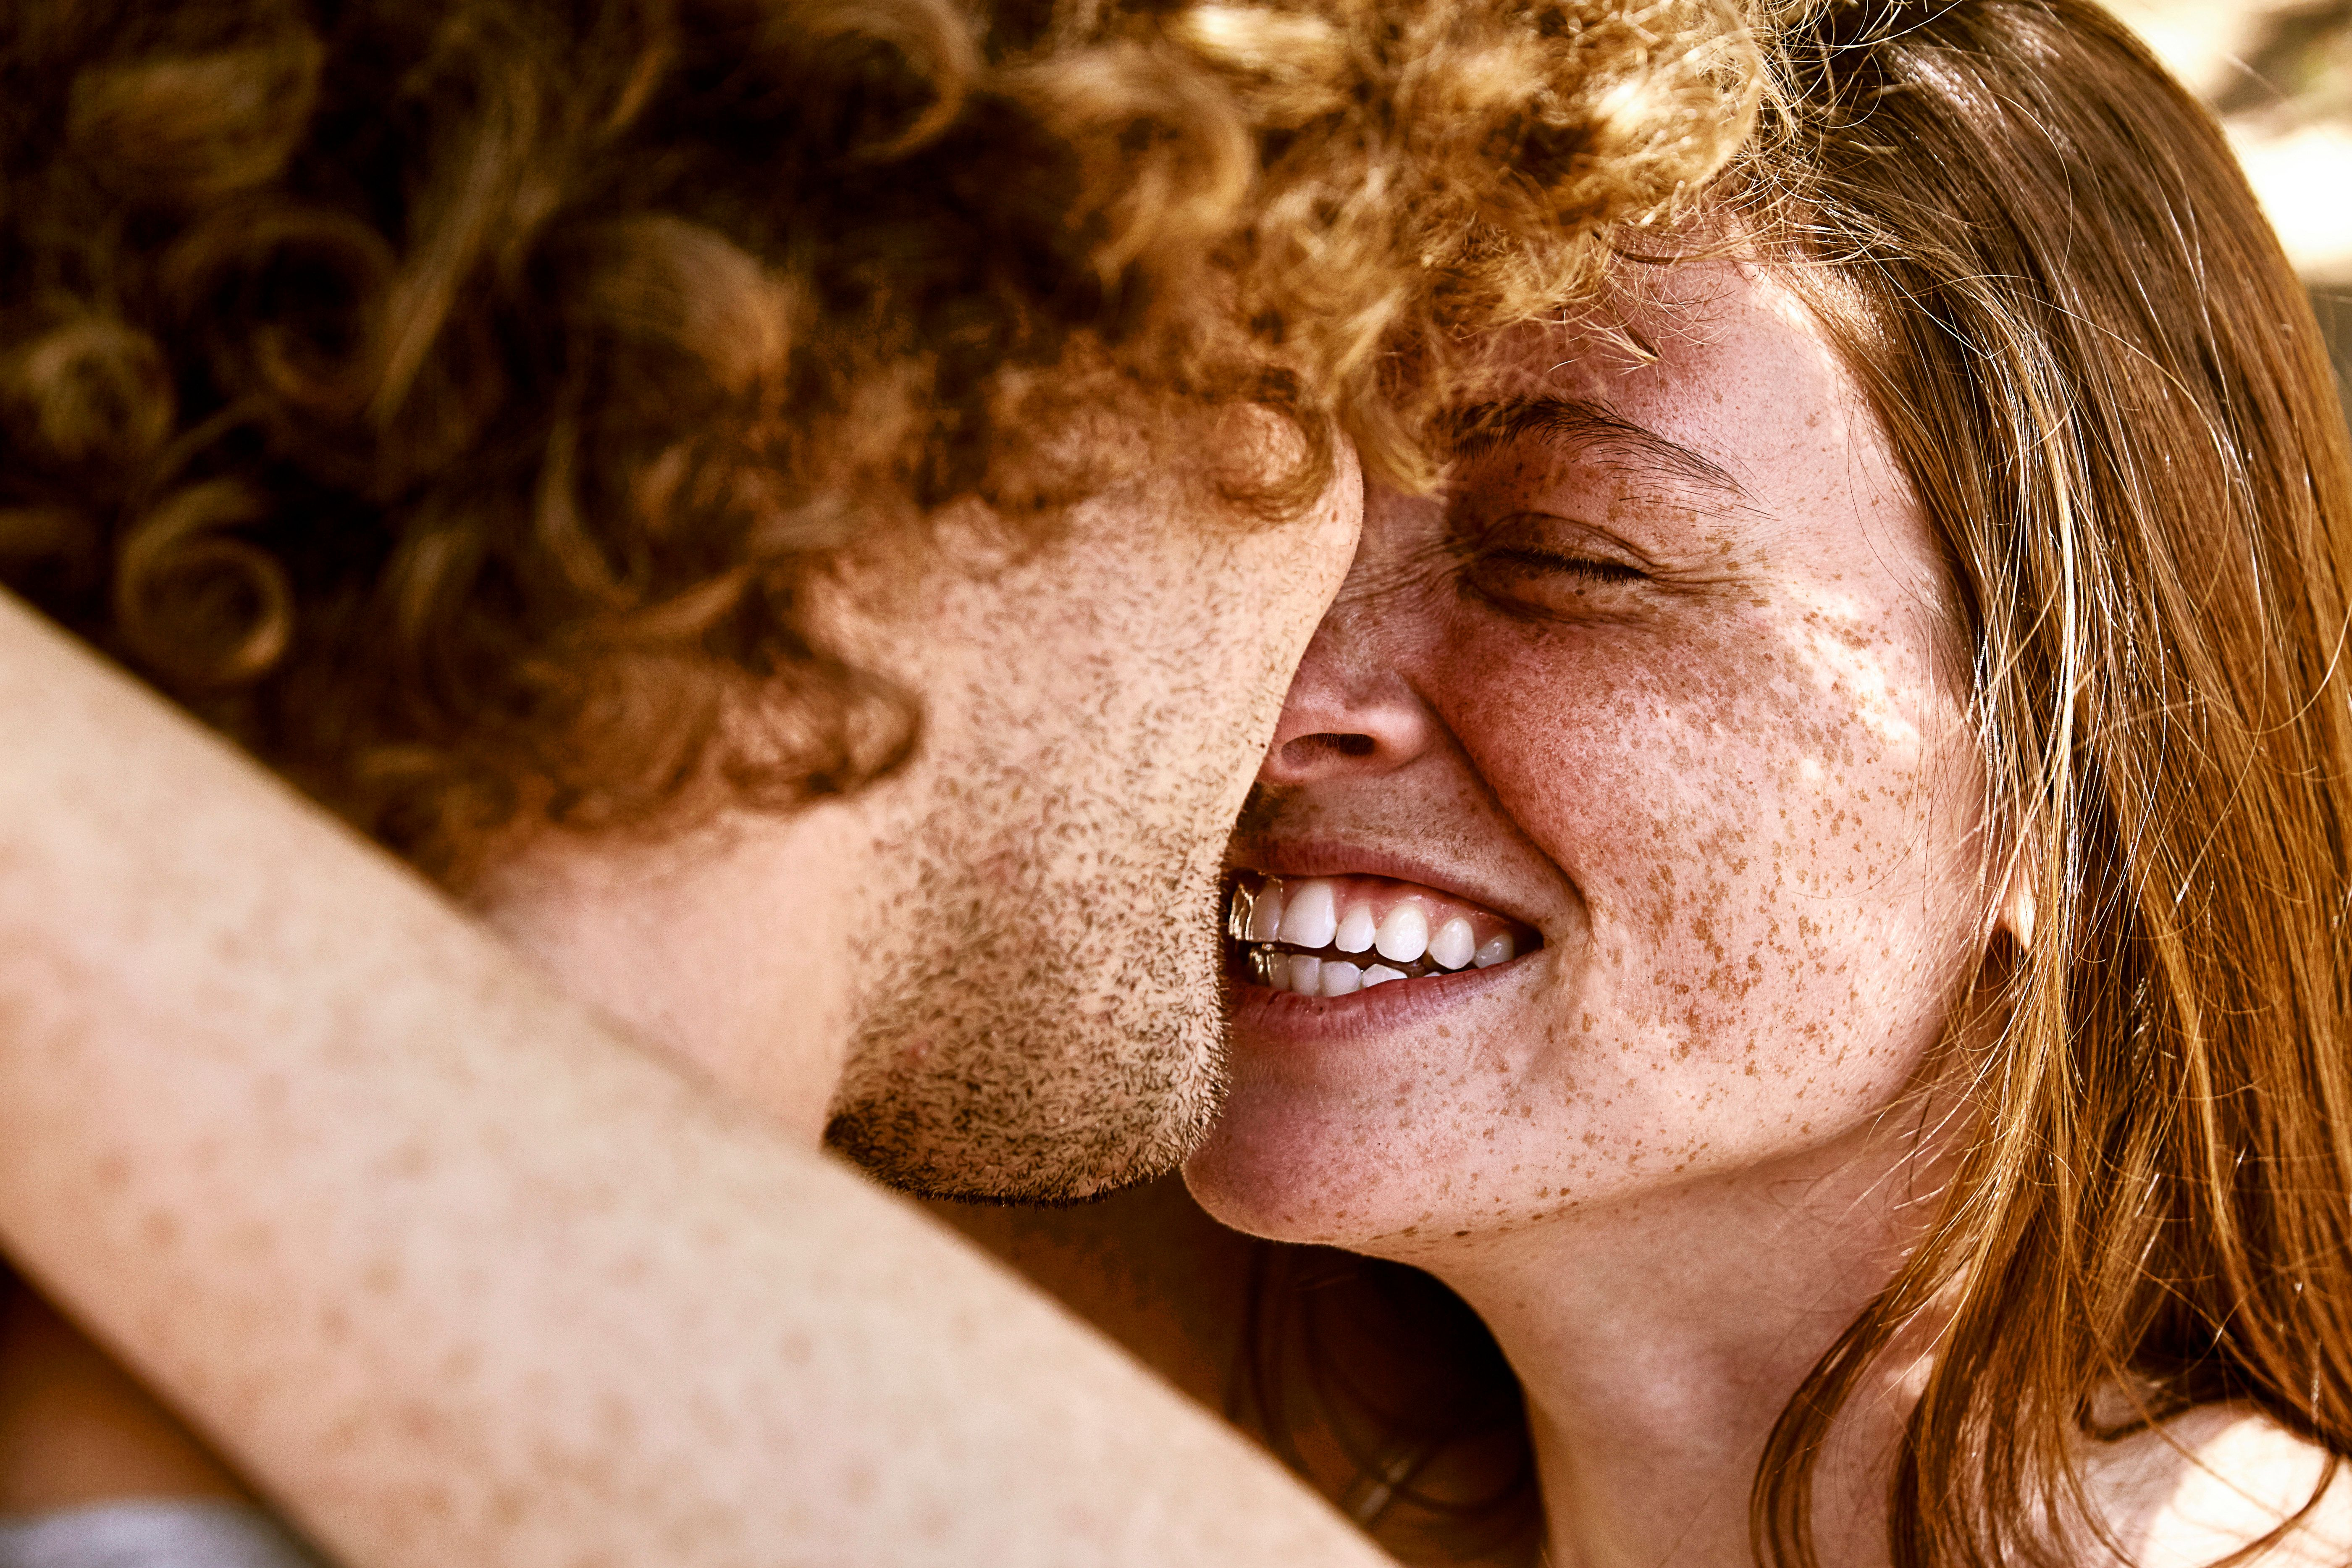 If you and your partner want a successful, long-lasting marriage, experts say these habits can make a big difference.